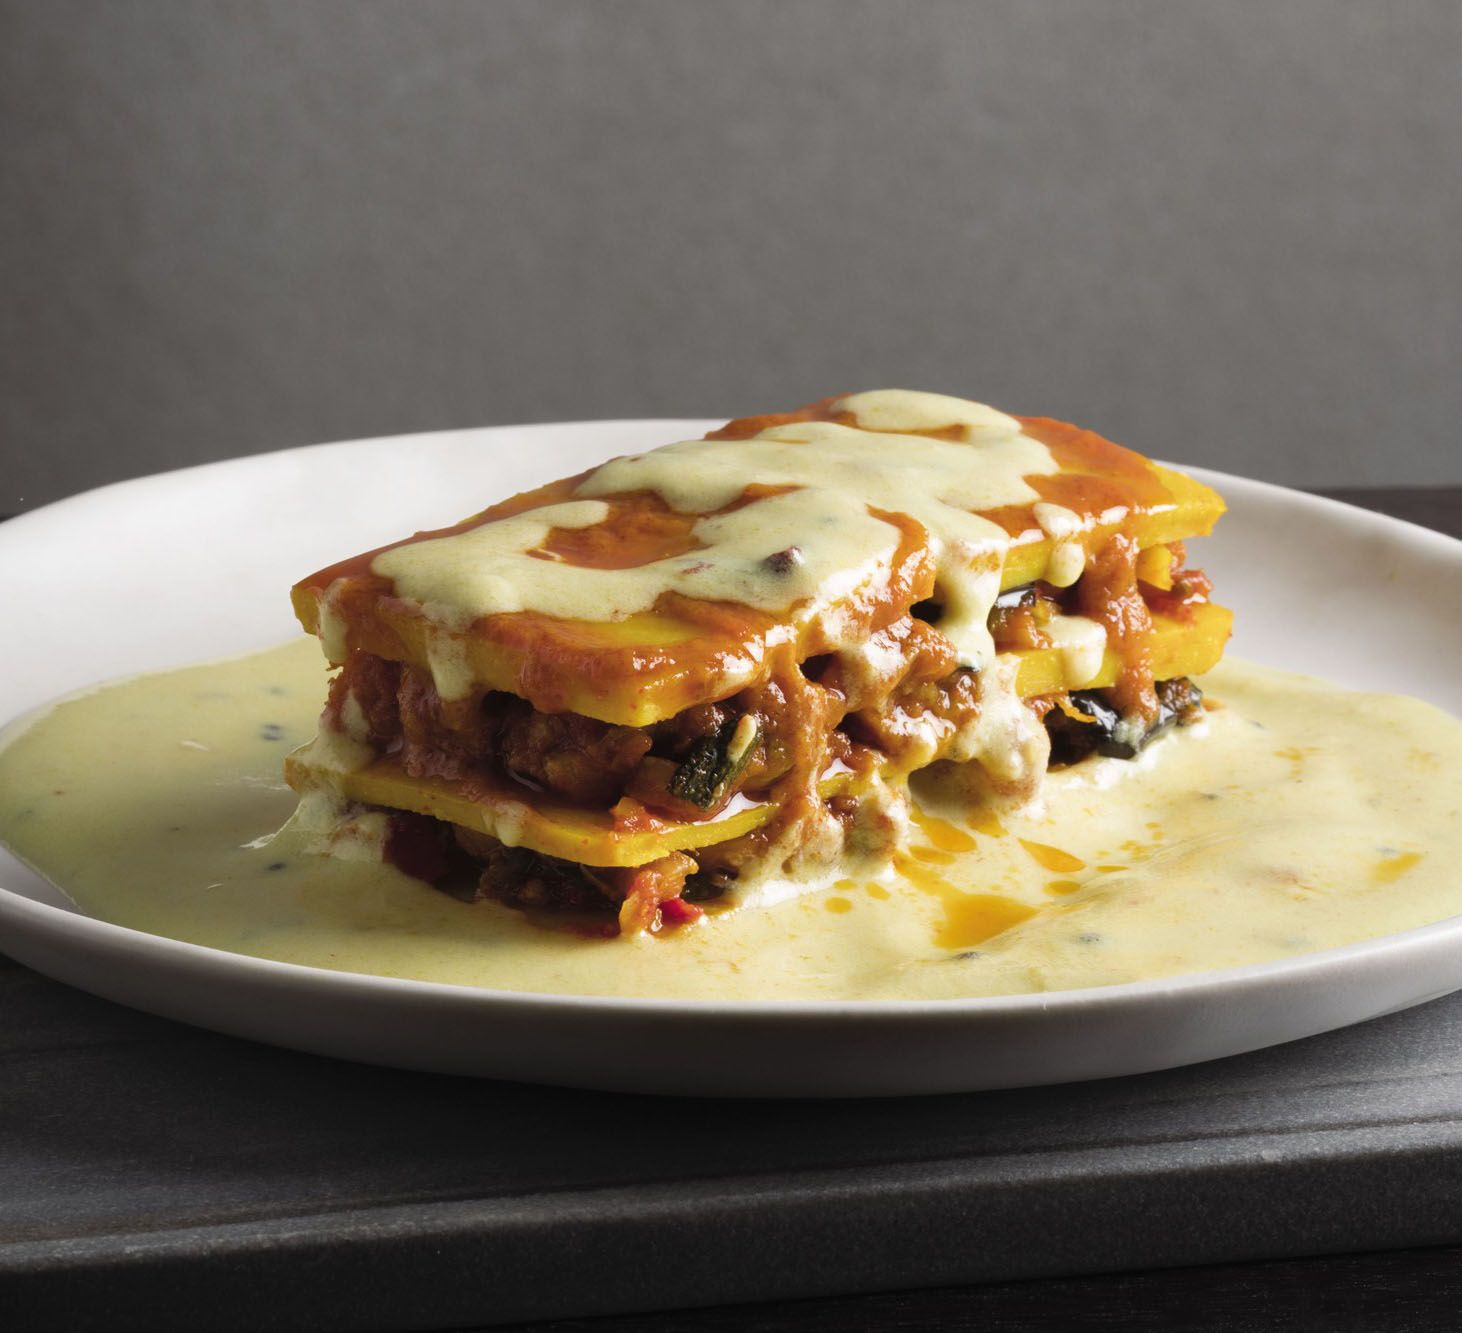 Gujarti eggplant and sweet potato lasagna with kadi sauce recipe gujarti eggplant and sweet potato lasagna with kadi sauce recipe epicurious indian food pinterest potato lasagna eggplants and sauces forumfinder Gallery